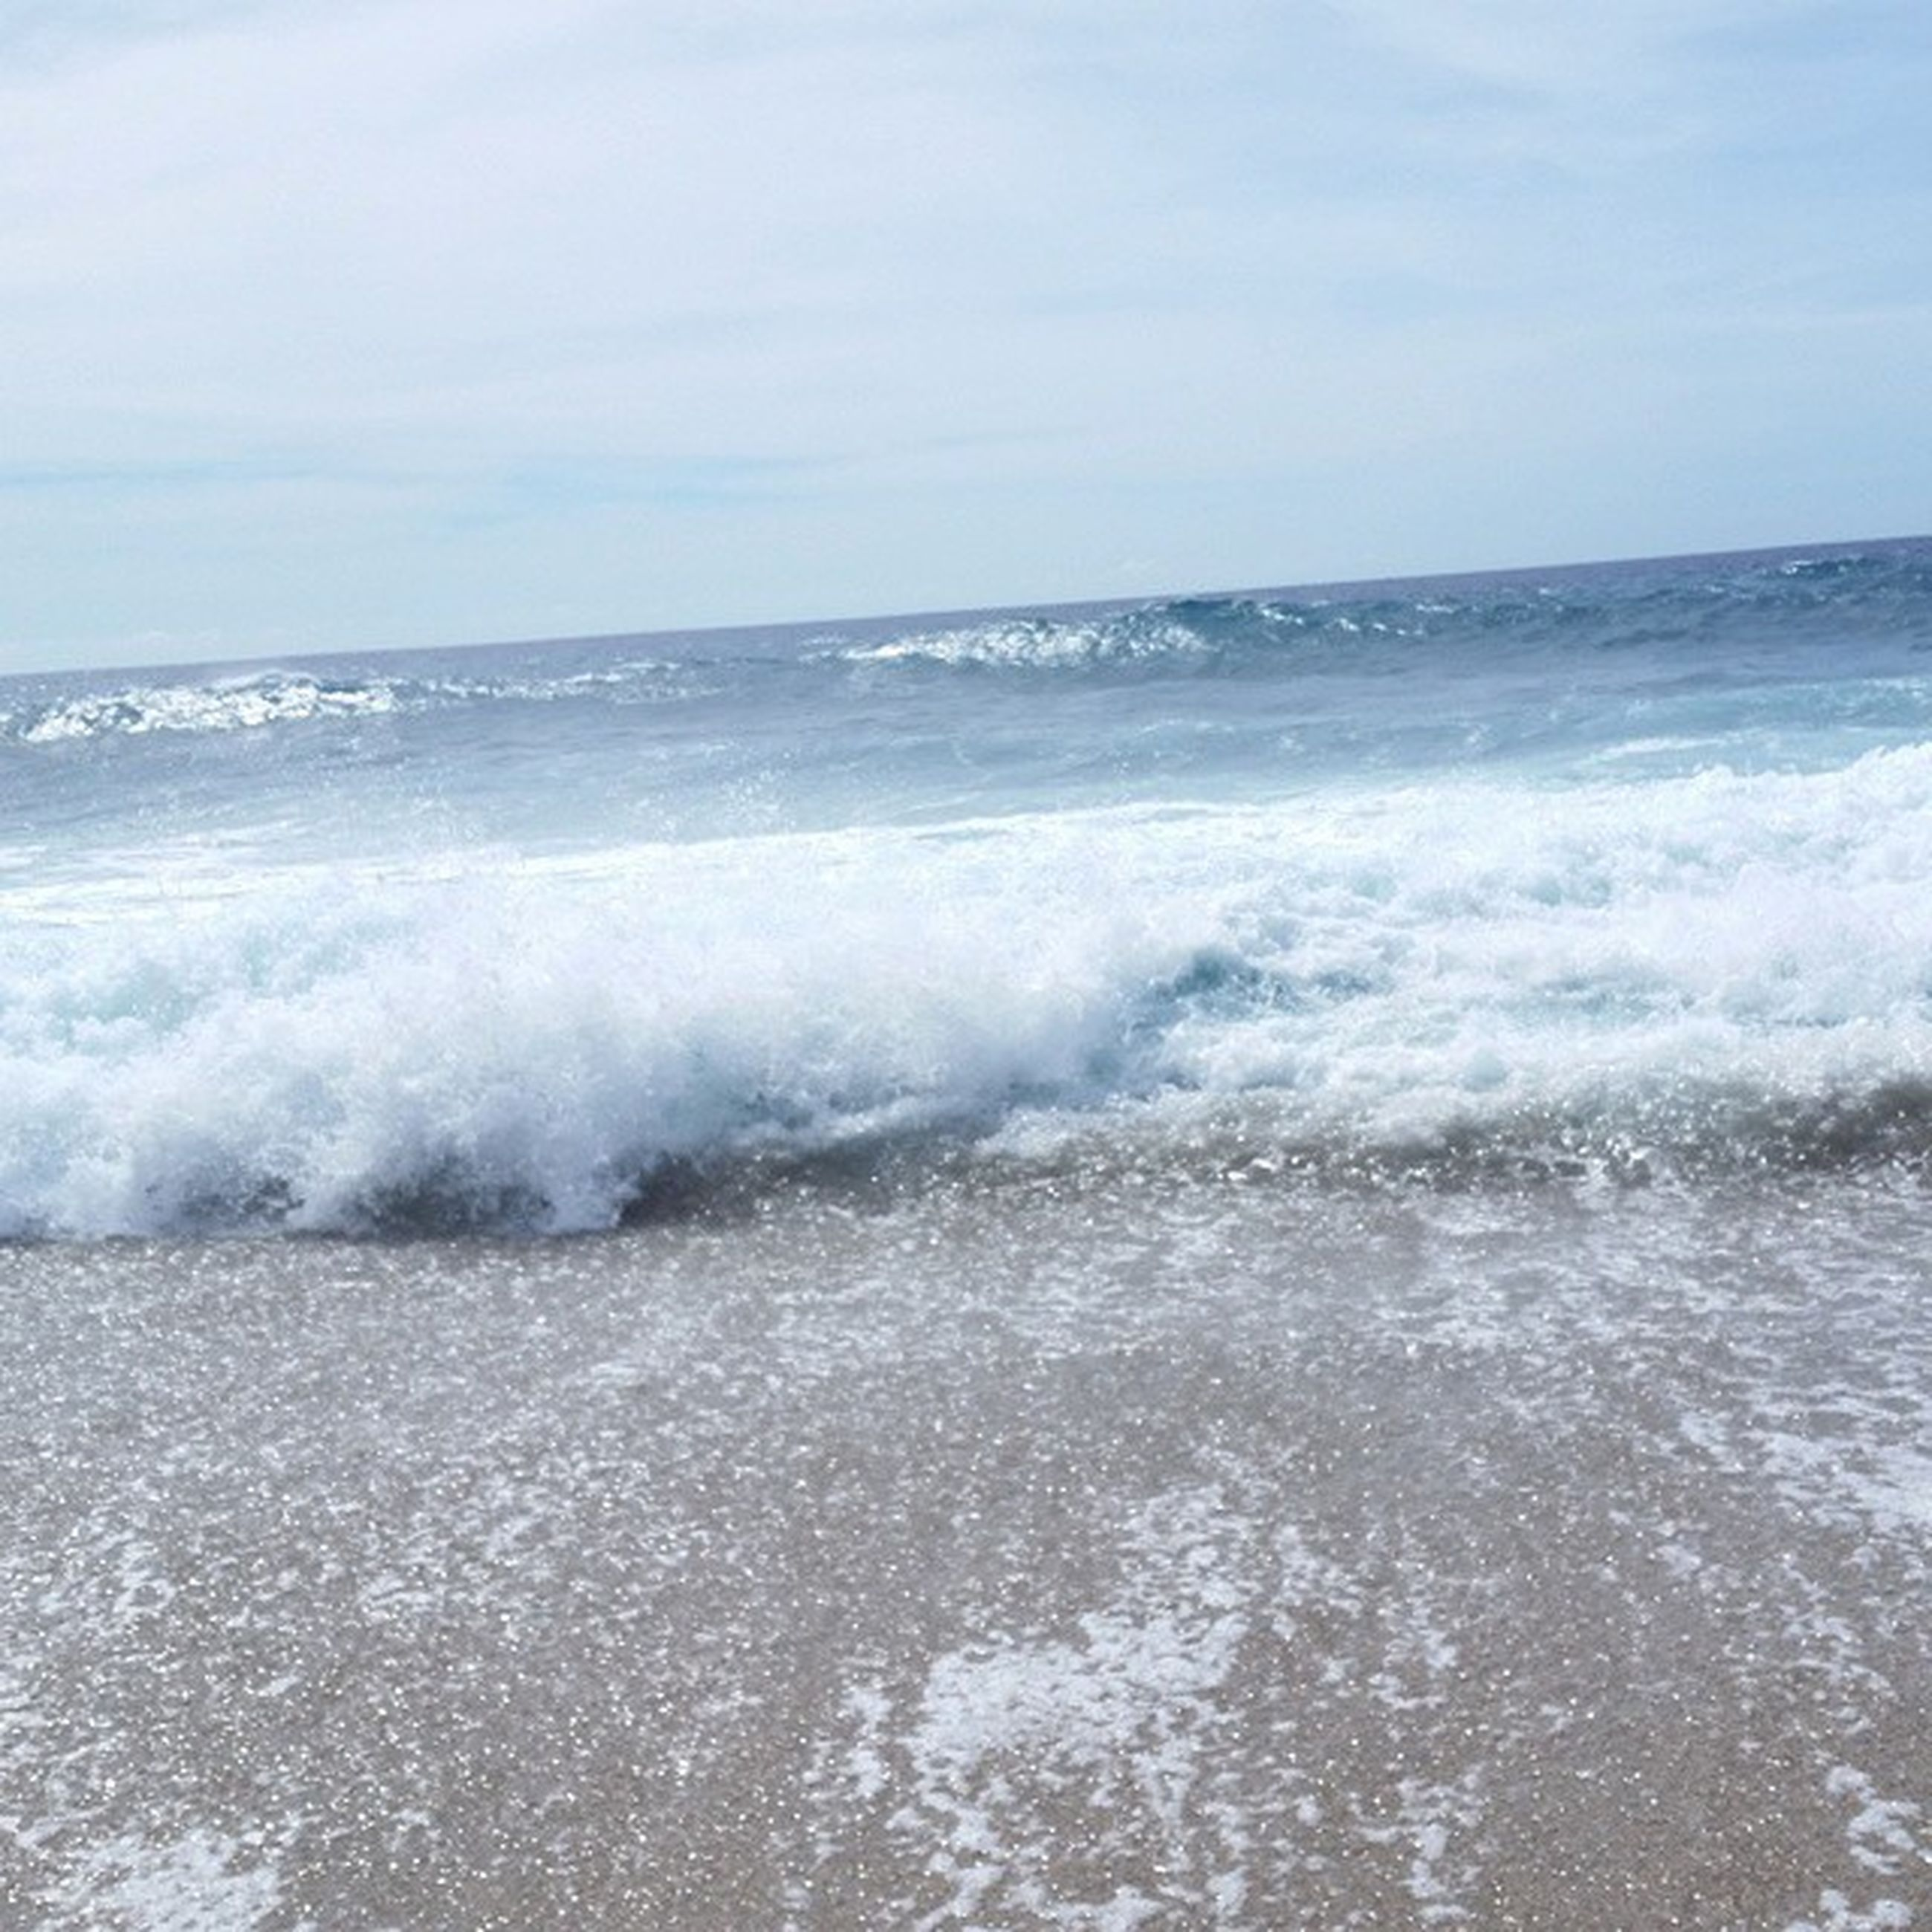 sea, water, horizon over water, wave, surf, beach, scenics, shore, motion, beauty in nature, sky, nature, splashing, tranquil scene, tranquility, tide, idyllic, power in nature, seascape, sand